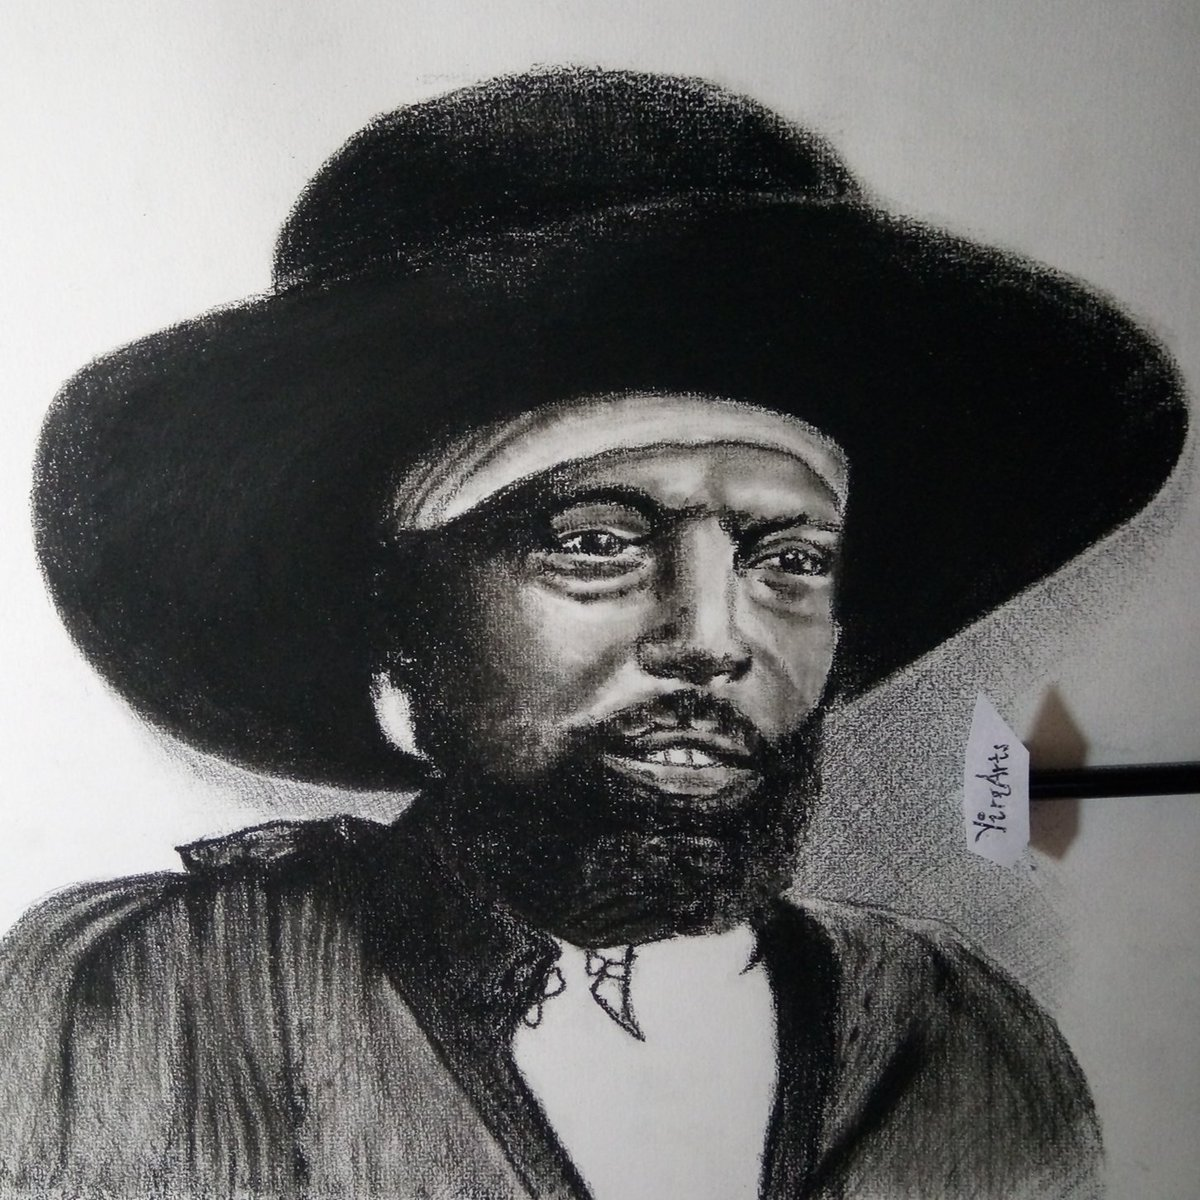 It&#39;s my extreme privilege to #sketch the #portrait of Emperor Menelik &amp; dedicate to all #Ethiopia n as we celebrate his Birthday today. #HBD<br>http://pic.twitter.com/qtUNjP3fTD